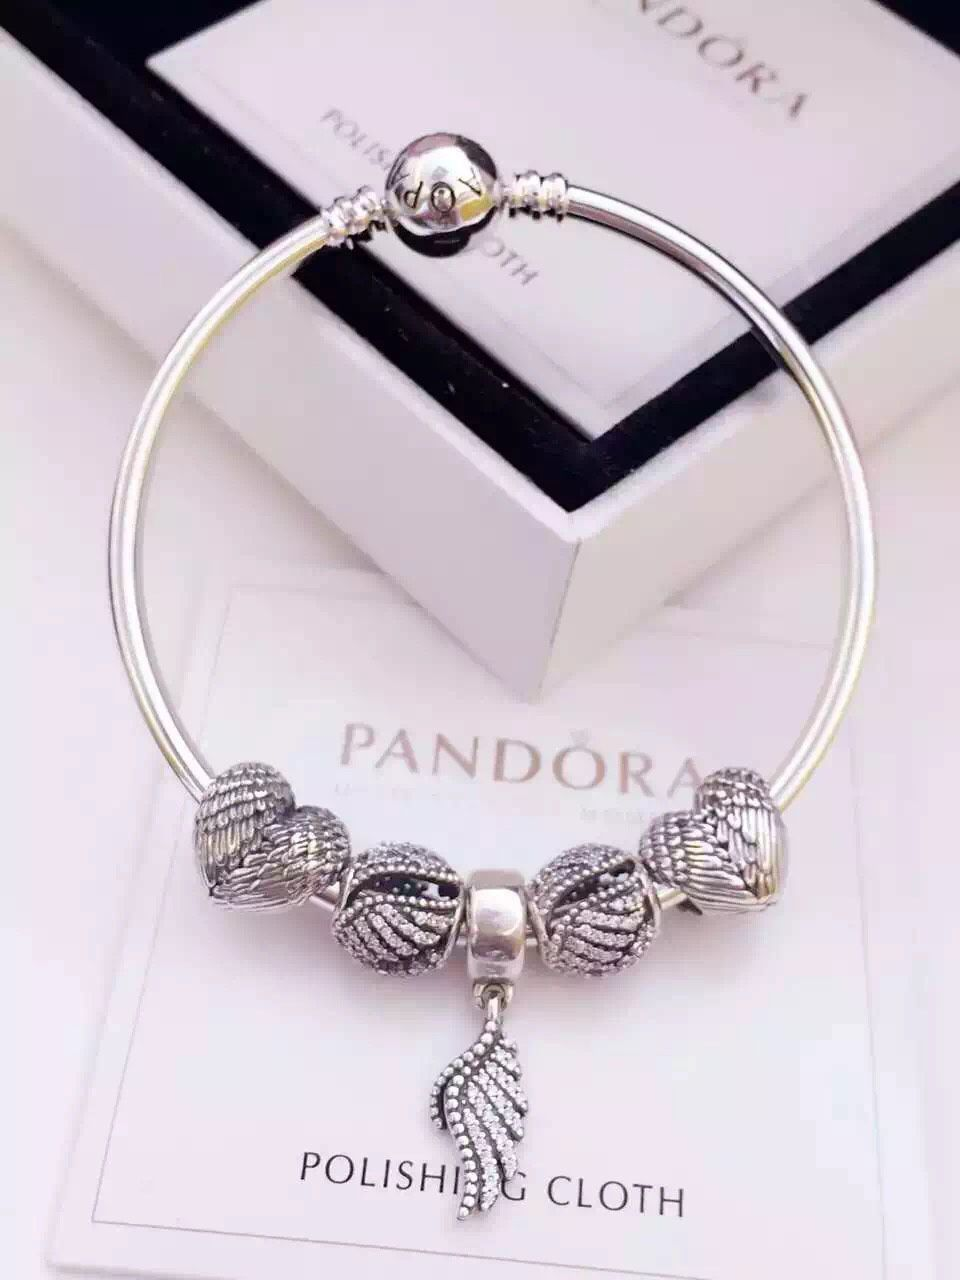 2ef11515d 50% OFF!!! $159 Pandora Bangle Charm Bracelet Silver. Hot Sale!!! SKU:  CB01757 - PANDORA Bracelet Ideas